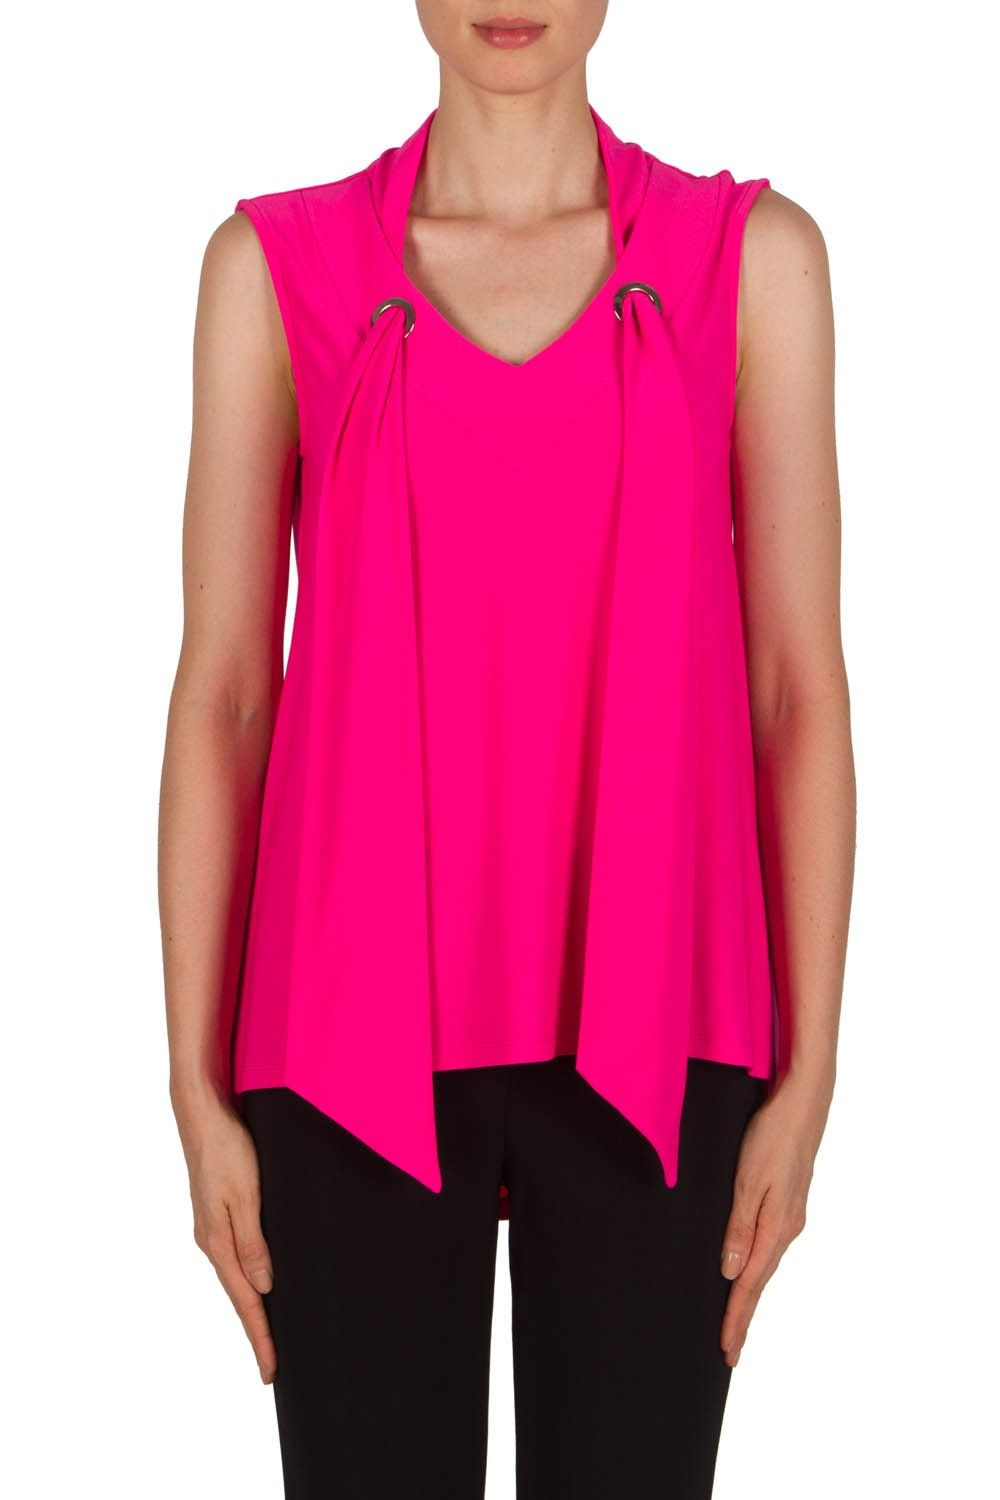 style number 181118 color neon pink material 96 polyester 4 spandex [ 1000 x 1500 Pixel ]